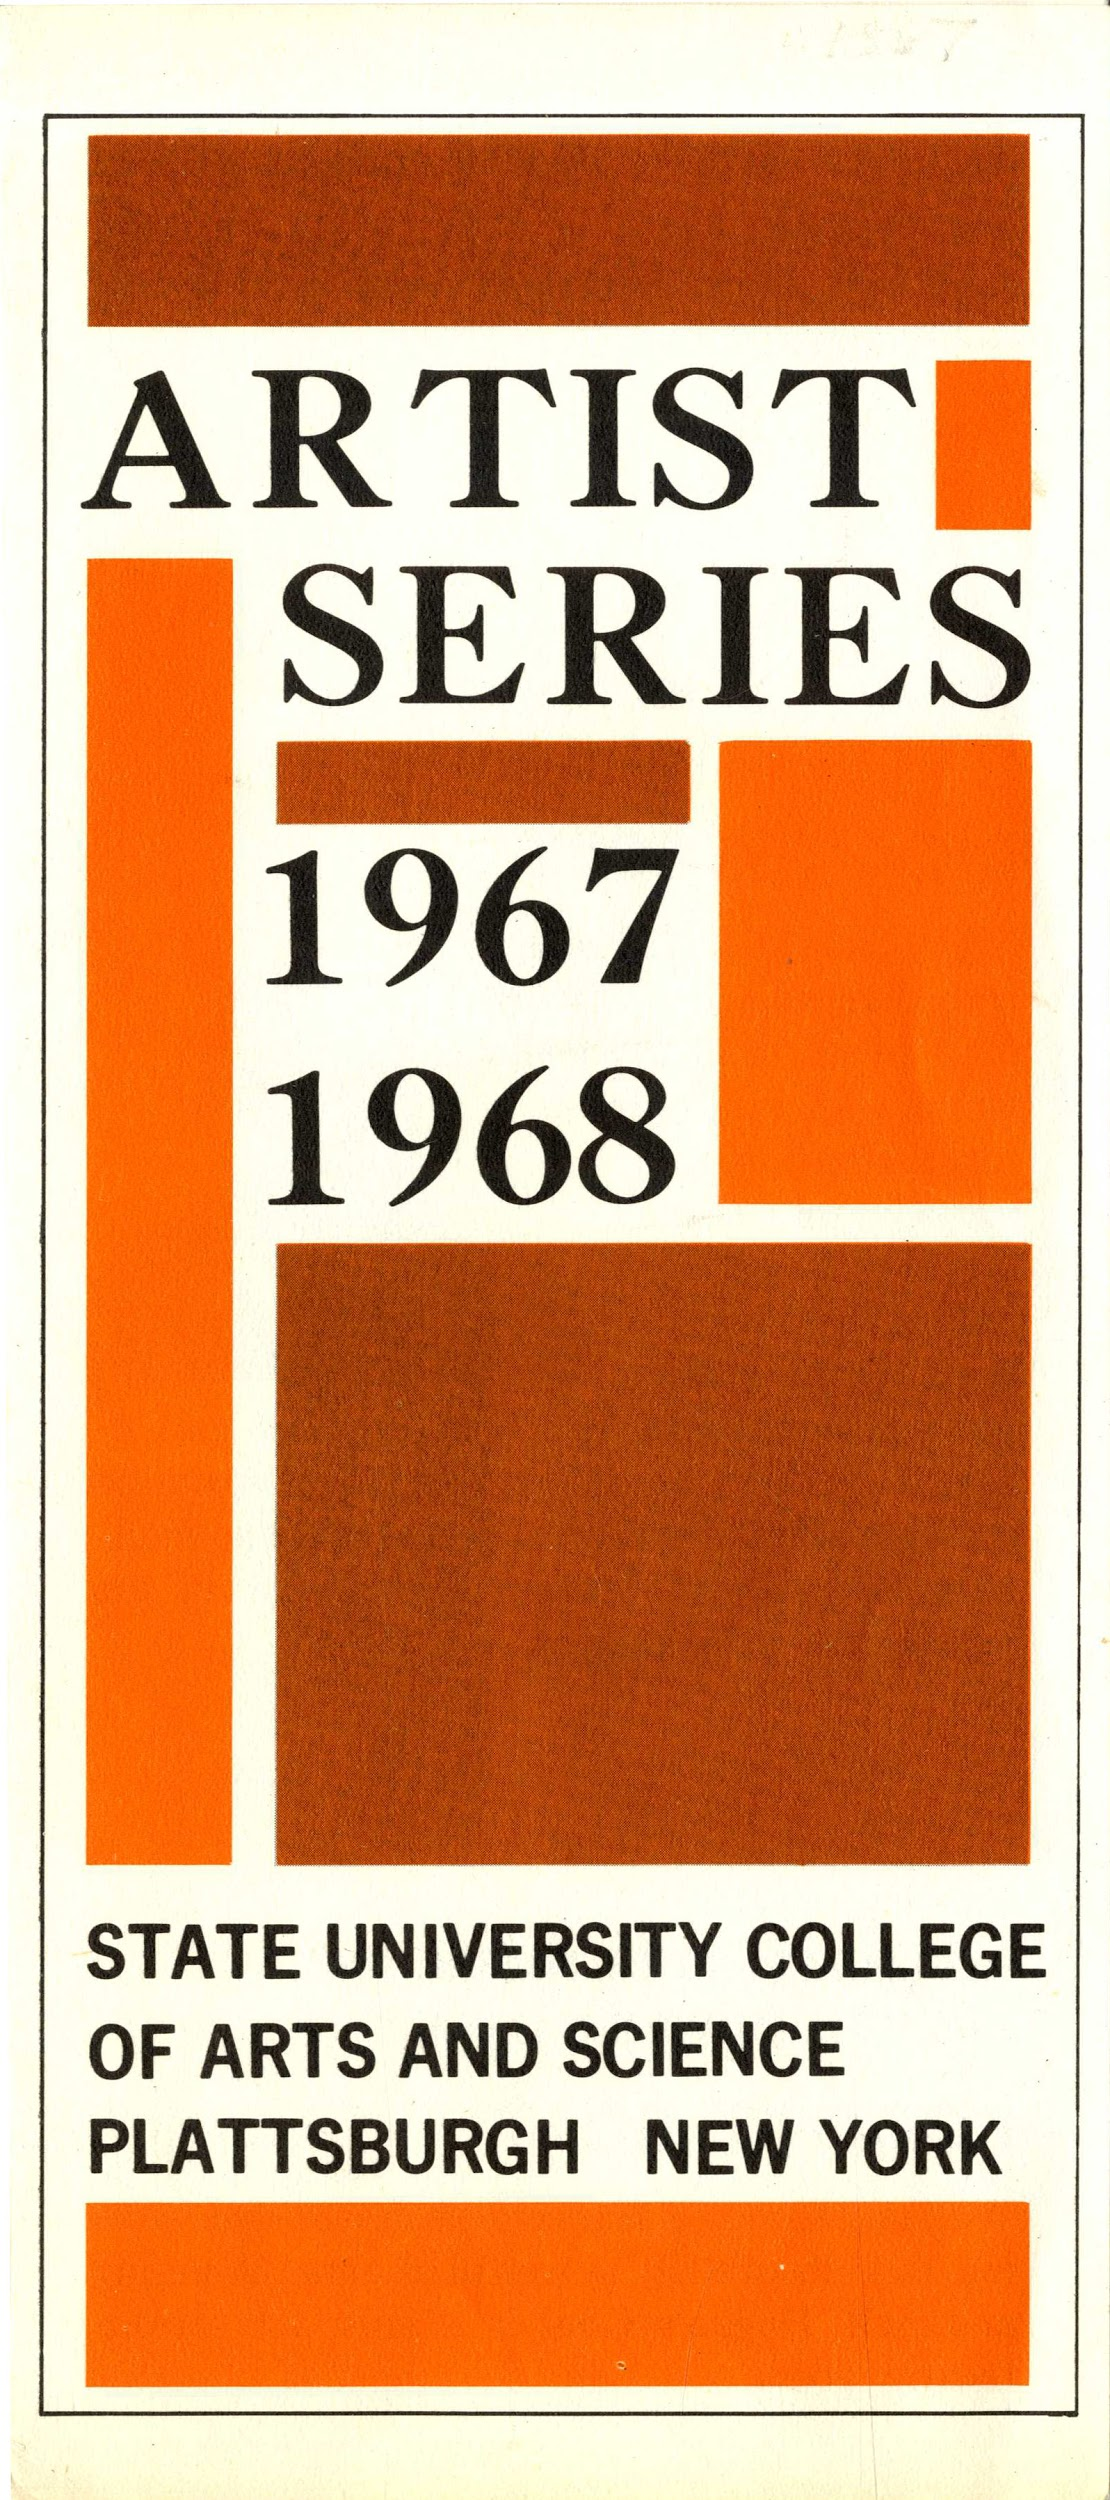 Artist Series 1967-1968. State University College of Arts and Science, Plattsburgh, New York